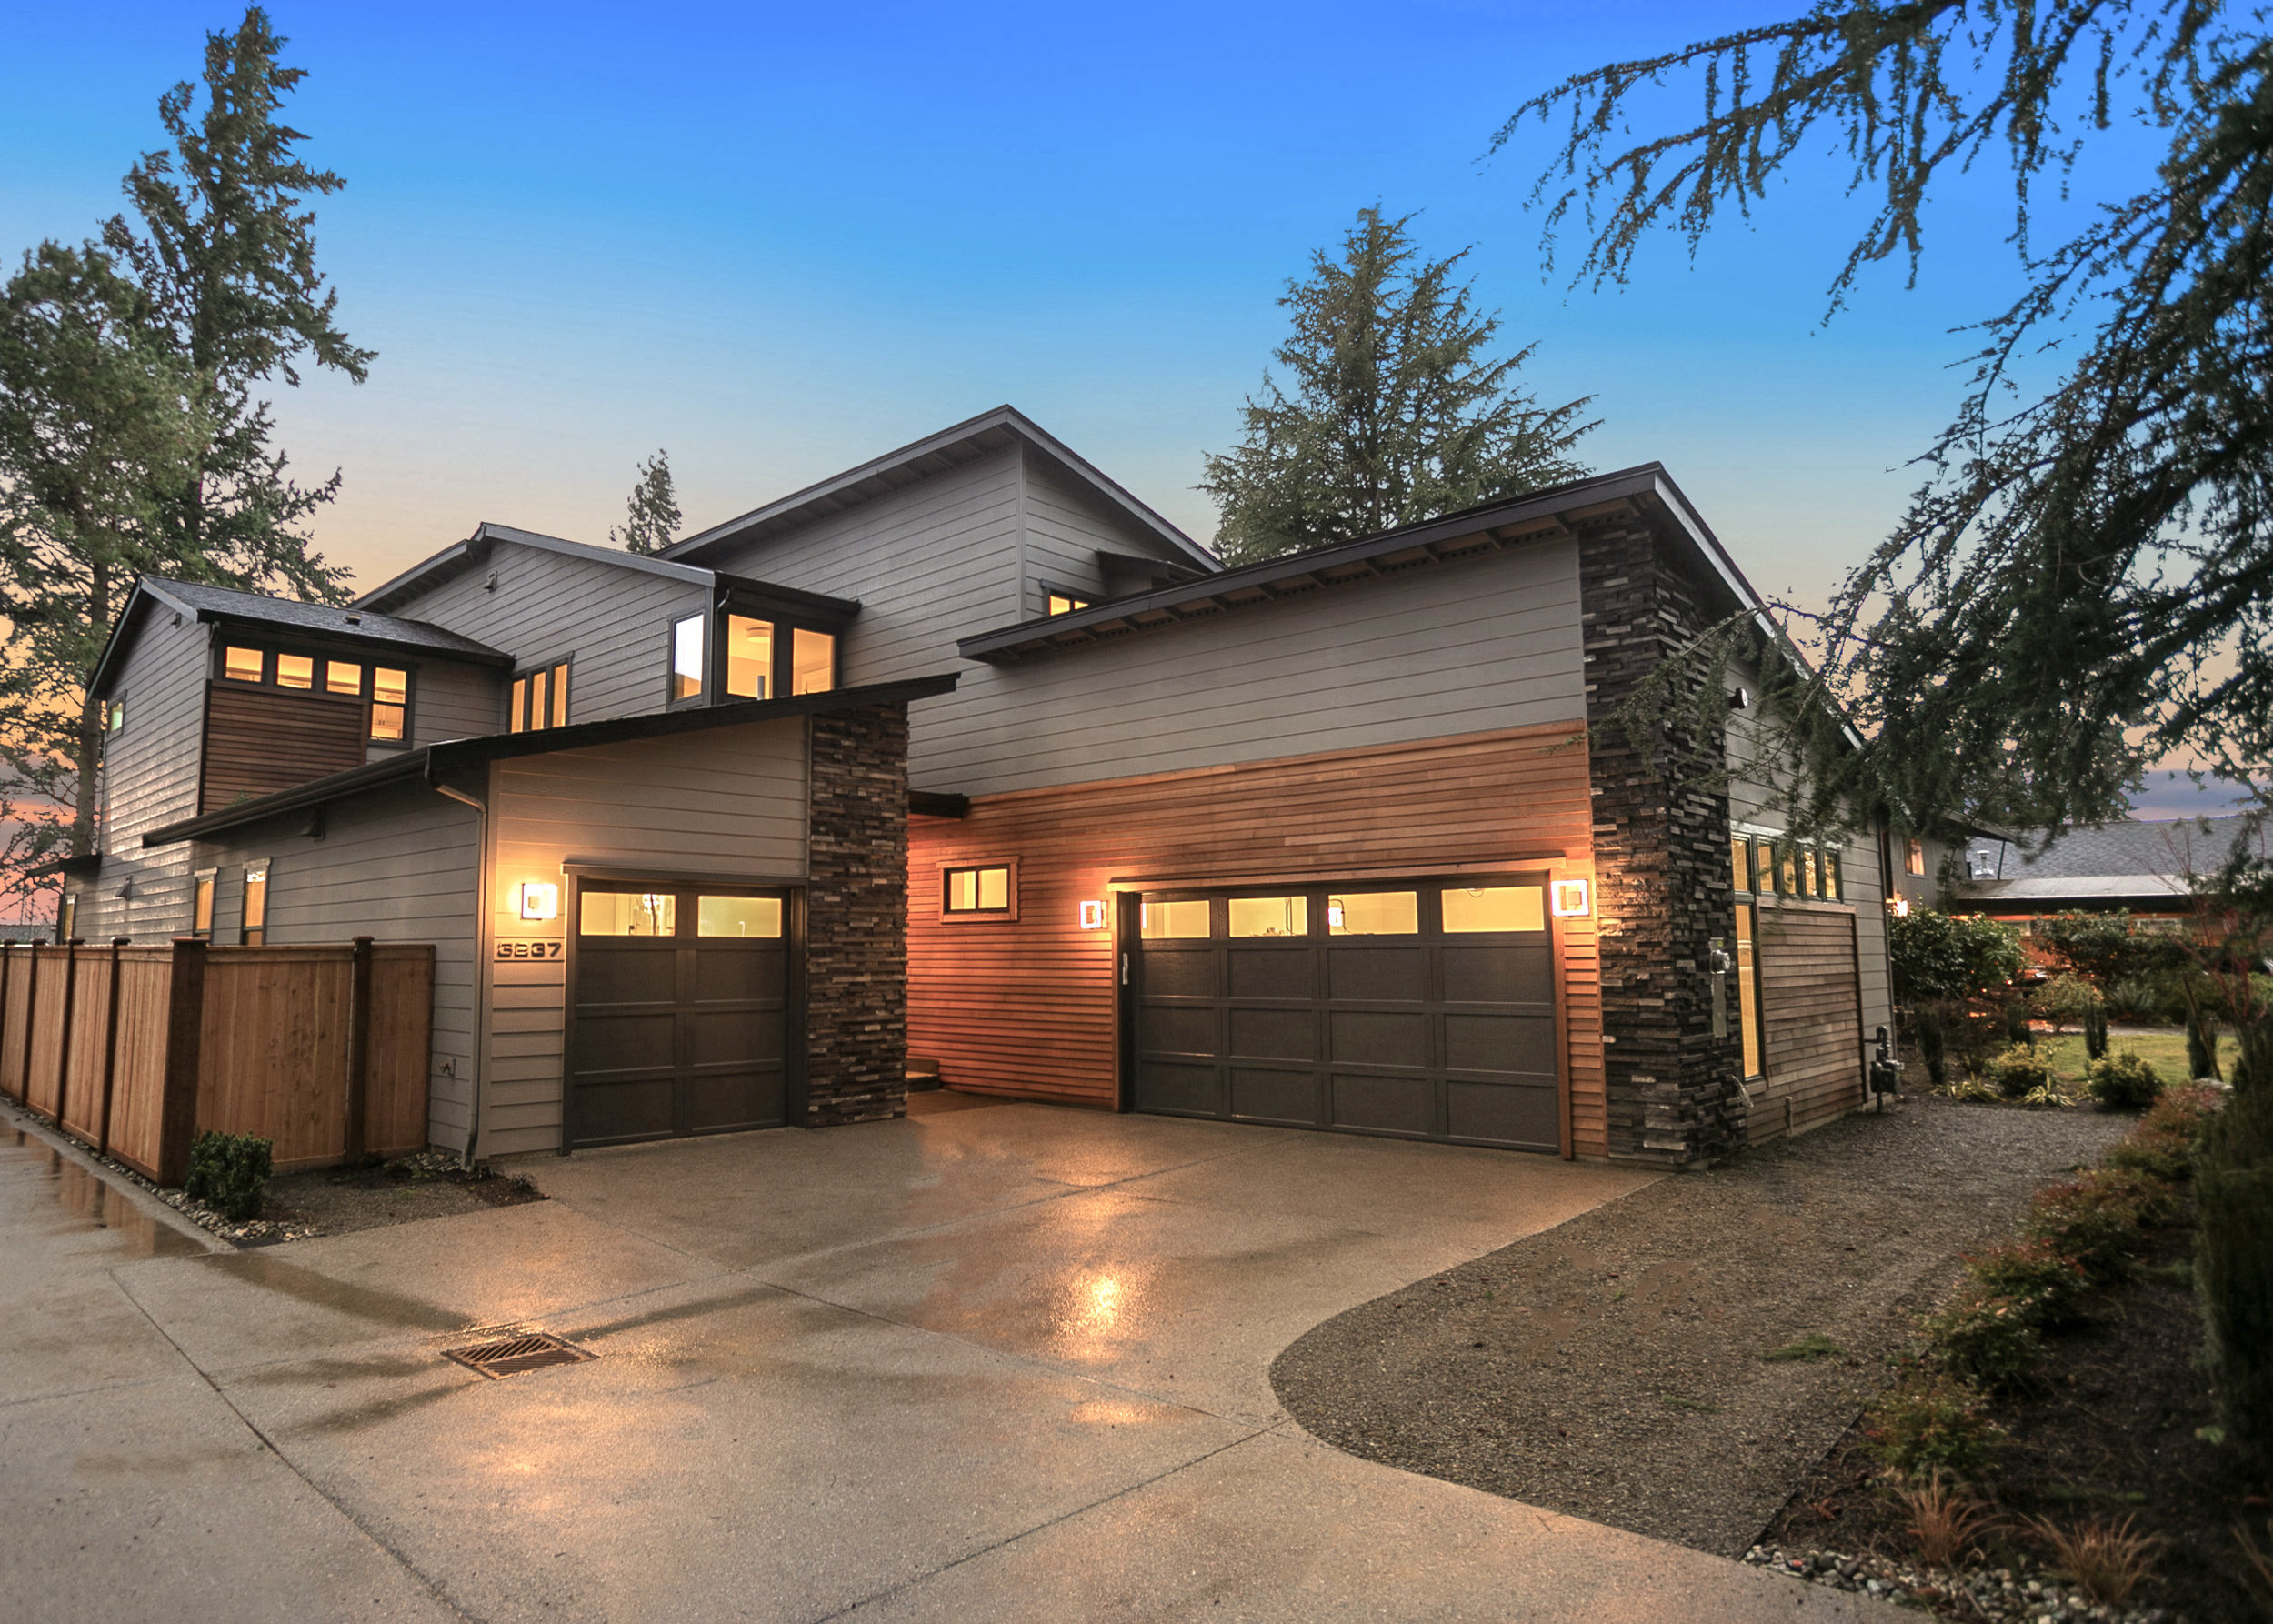 3237 74th Ave SE, Mercer Island | Sold for $2,600,000